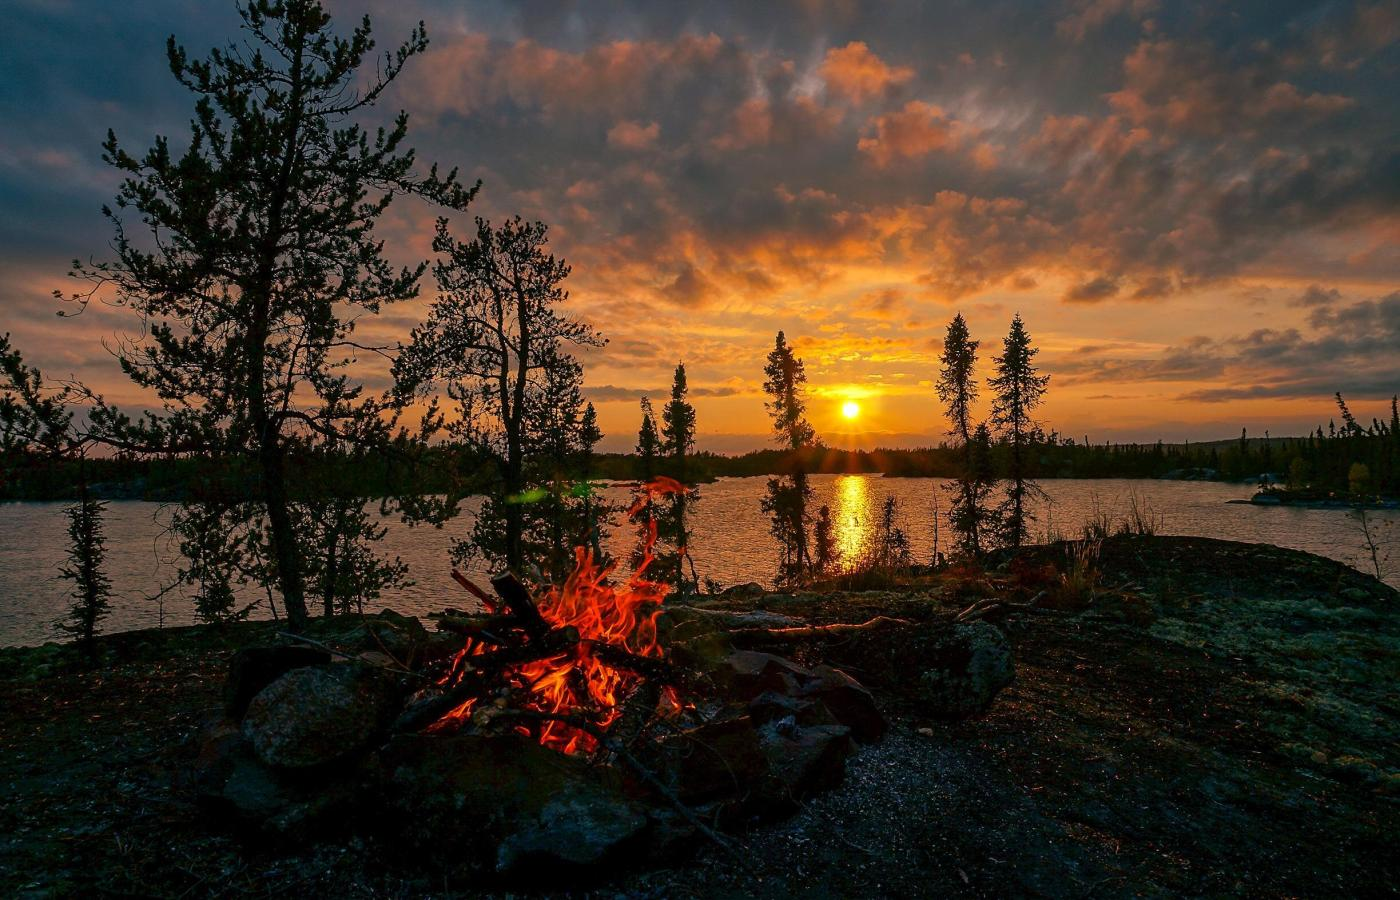 campfire at night with midnight sun